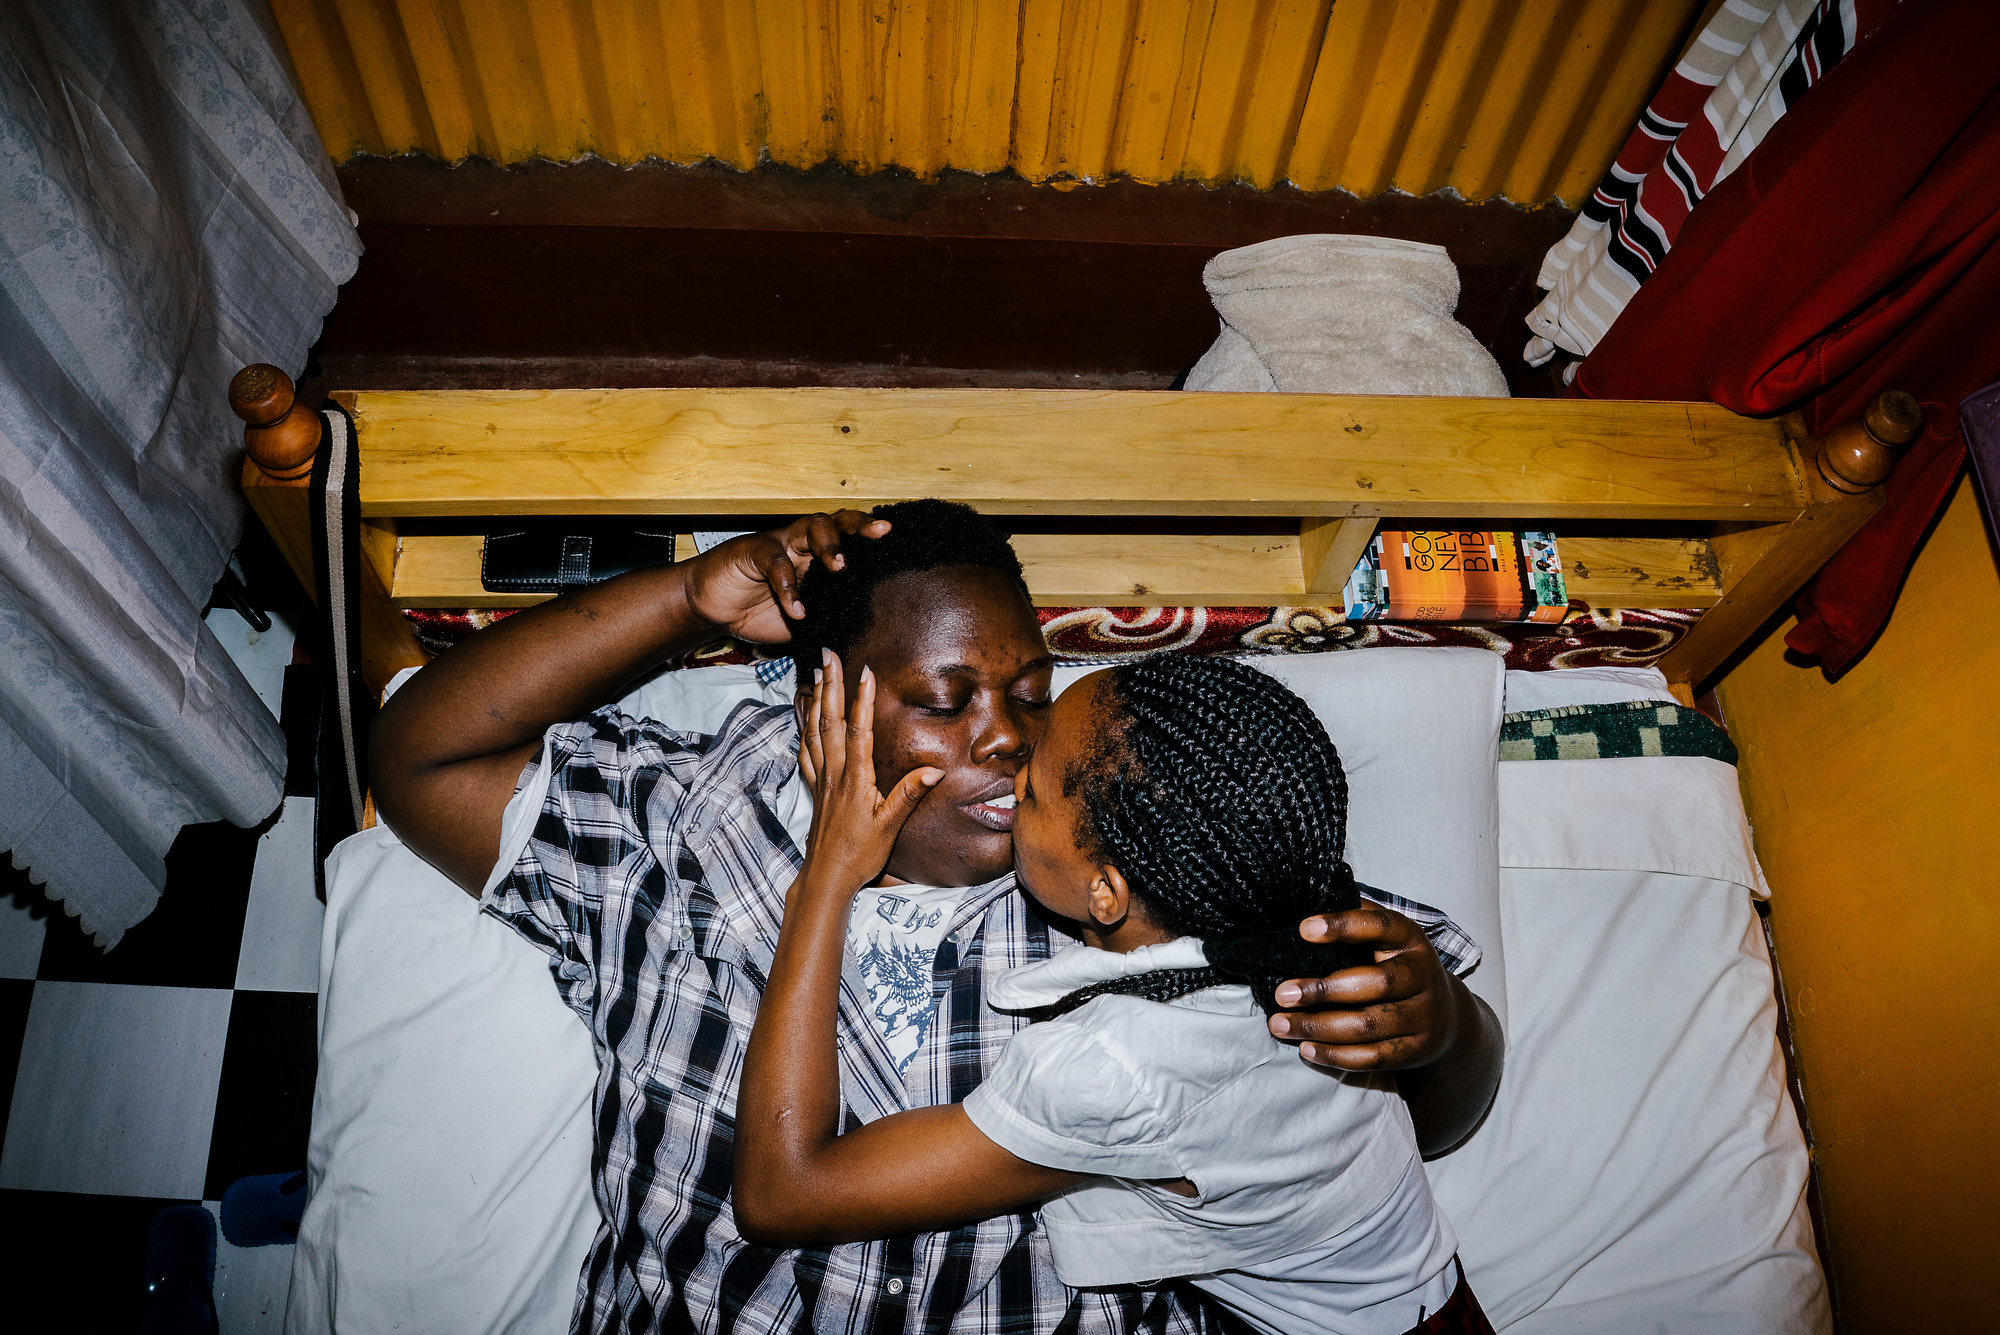 Cynthia is a lesbian activist and refugee from Burundi. She fled her country after authorities found out she was gay. They beat her and cut her with machetes. Here, she lays in bed with her Kenyan girlfriend in the apartment the two shared in Nairobi, Kenya. She has since been resettled in the United States.